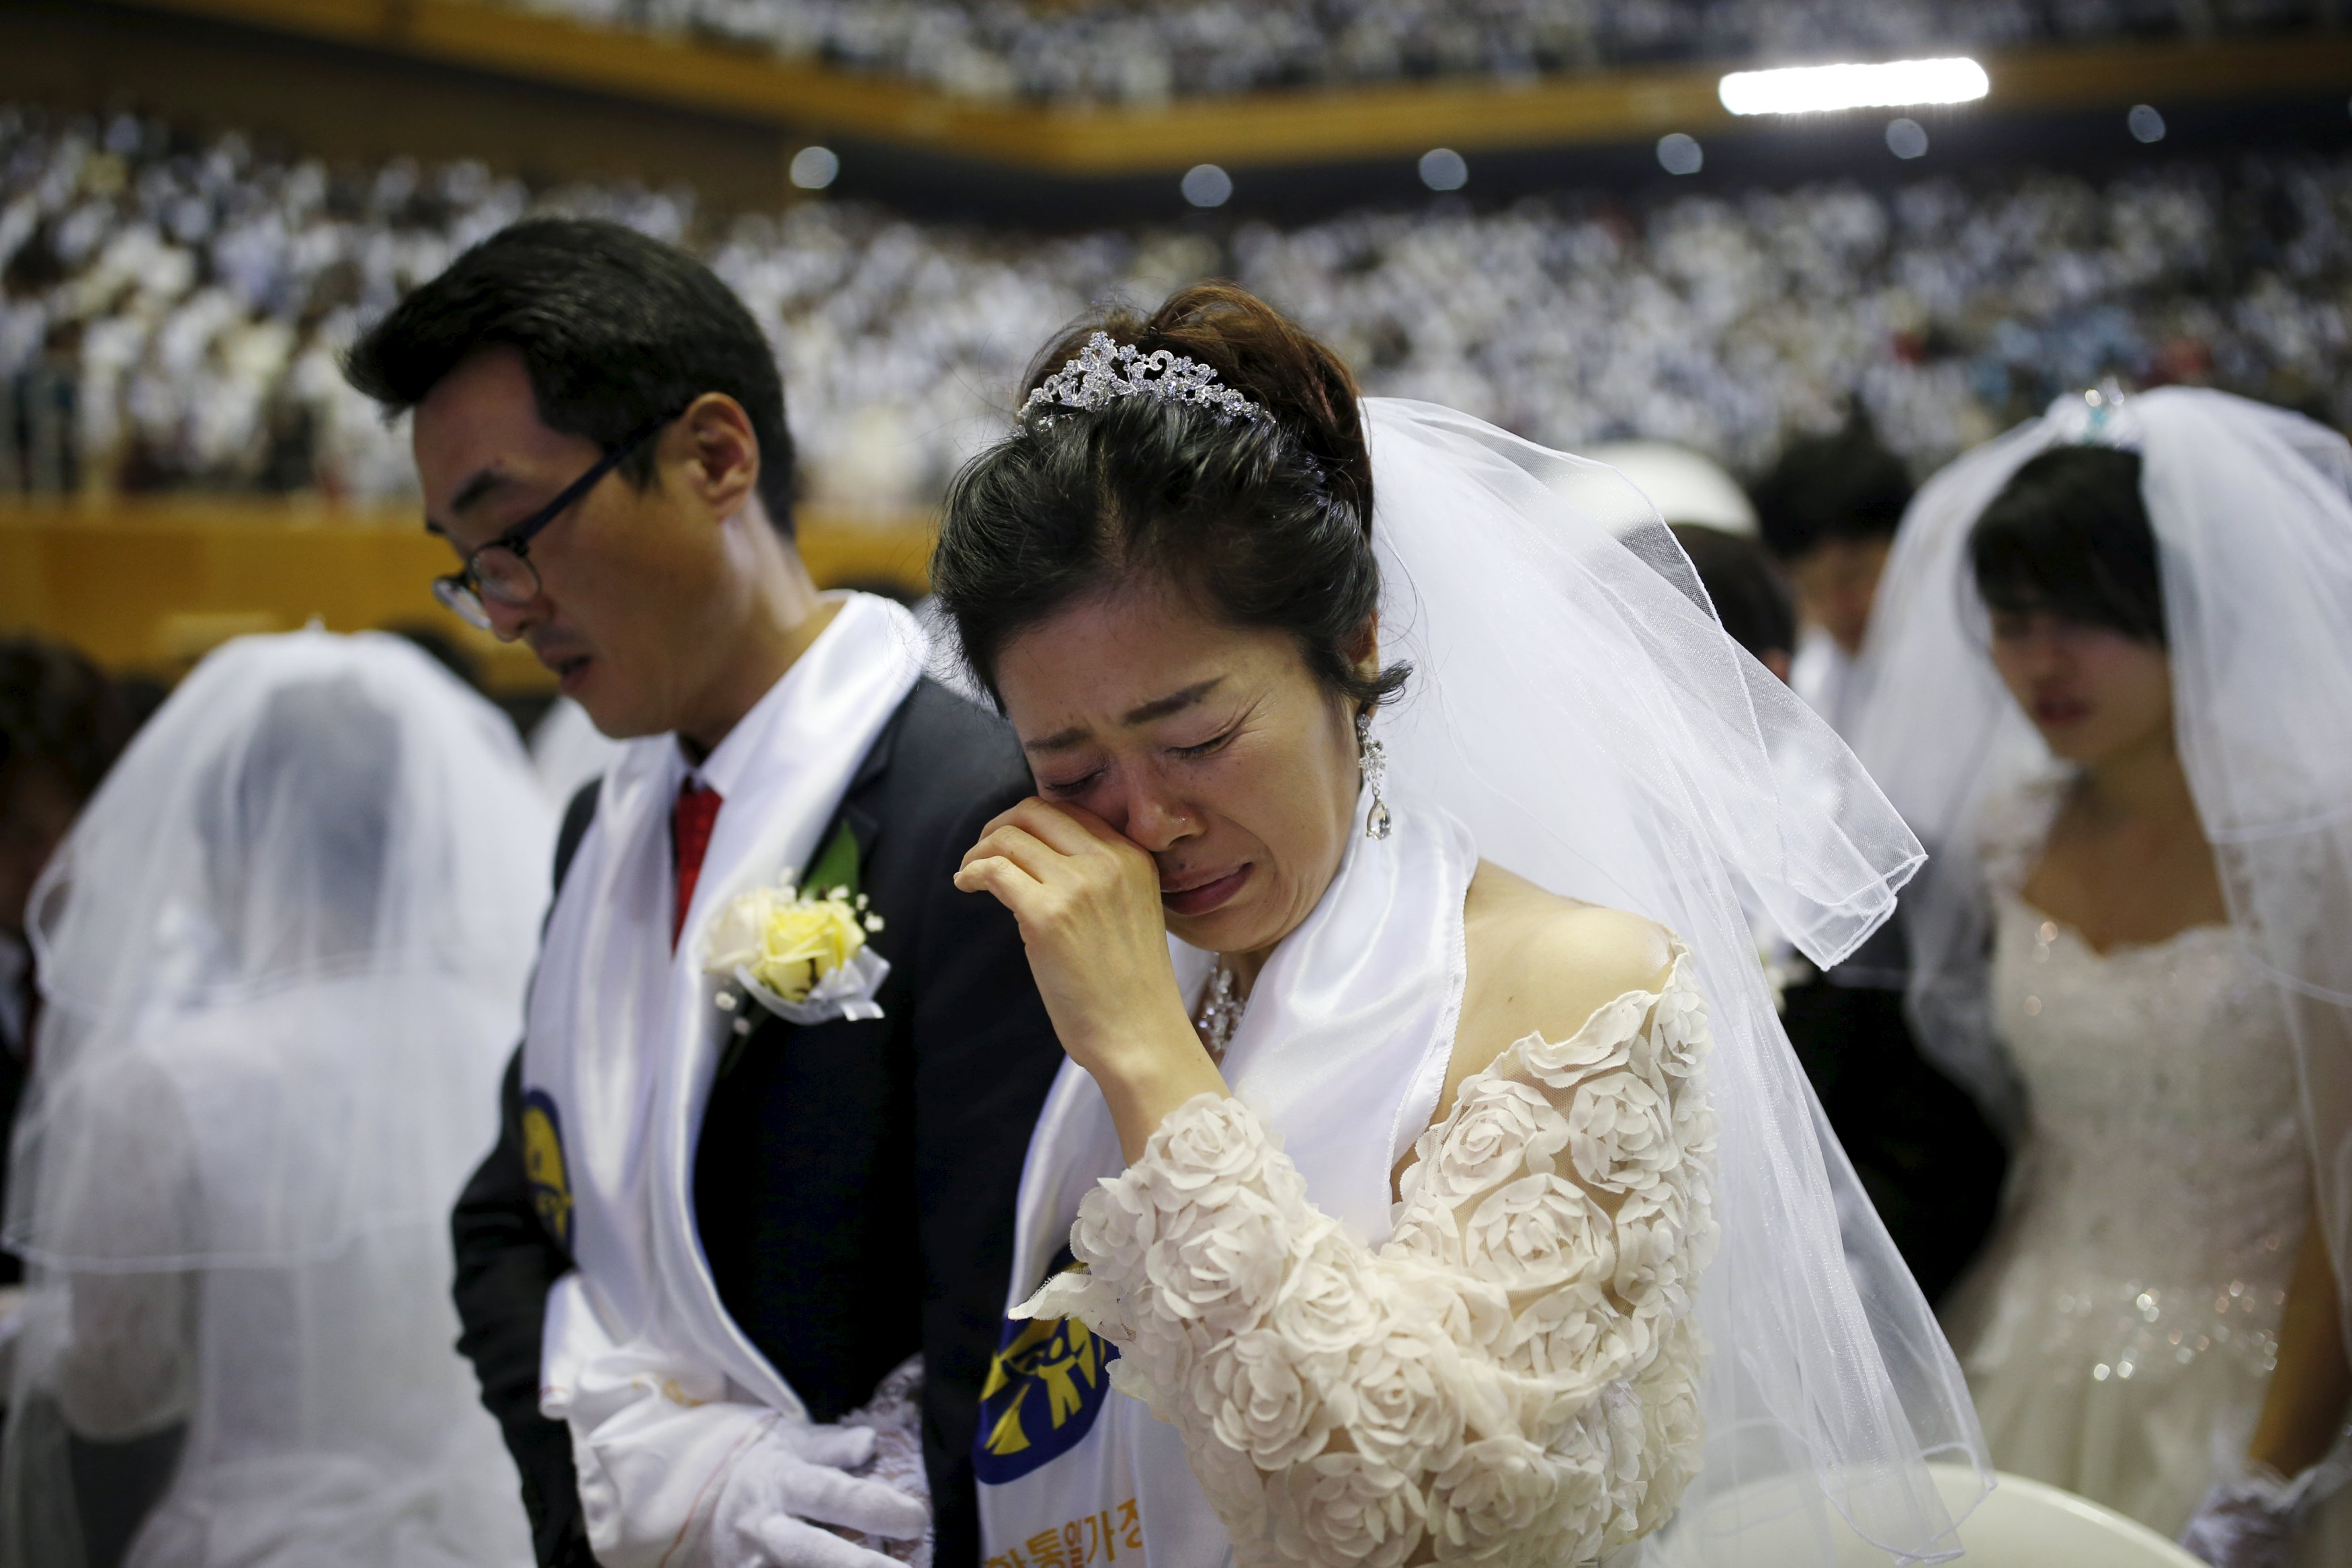 A bride cries during a mass wedding ceremony of the Unification Church at Cheongshim Peace World Centre in Gapyeong, South Korea, February 20, 2016. REUTERS/Kim Hong-Ji SOUTH KOREA-MASS WEDDING/